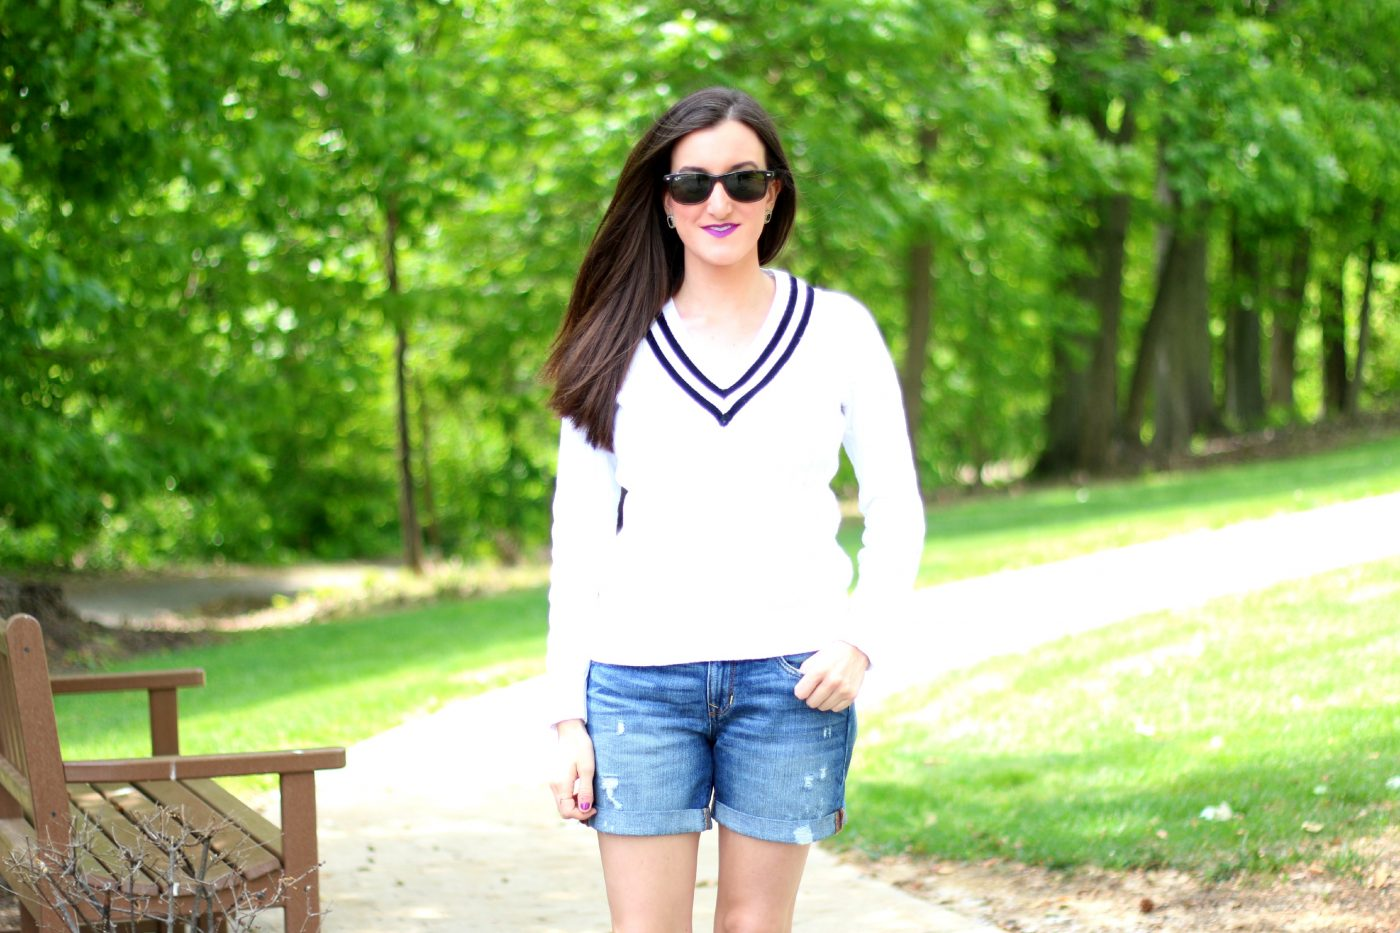 Cable Knit Sweater with Denim Shorts